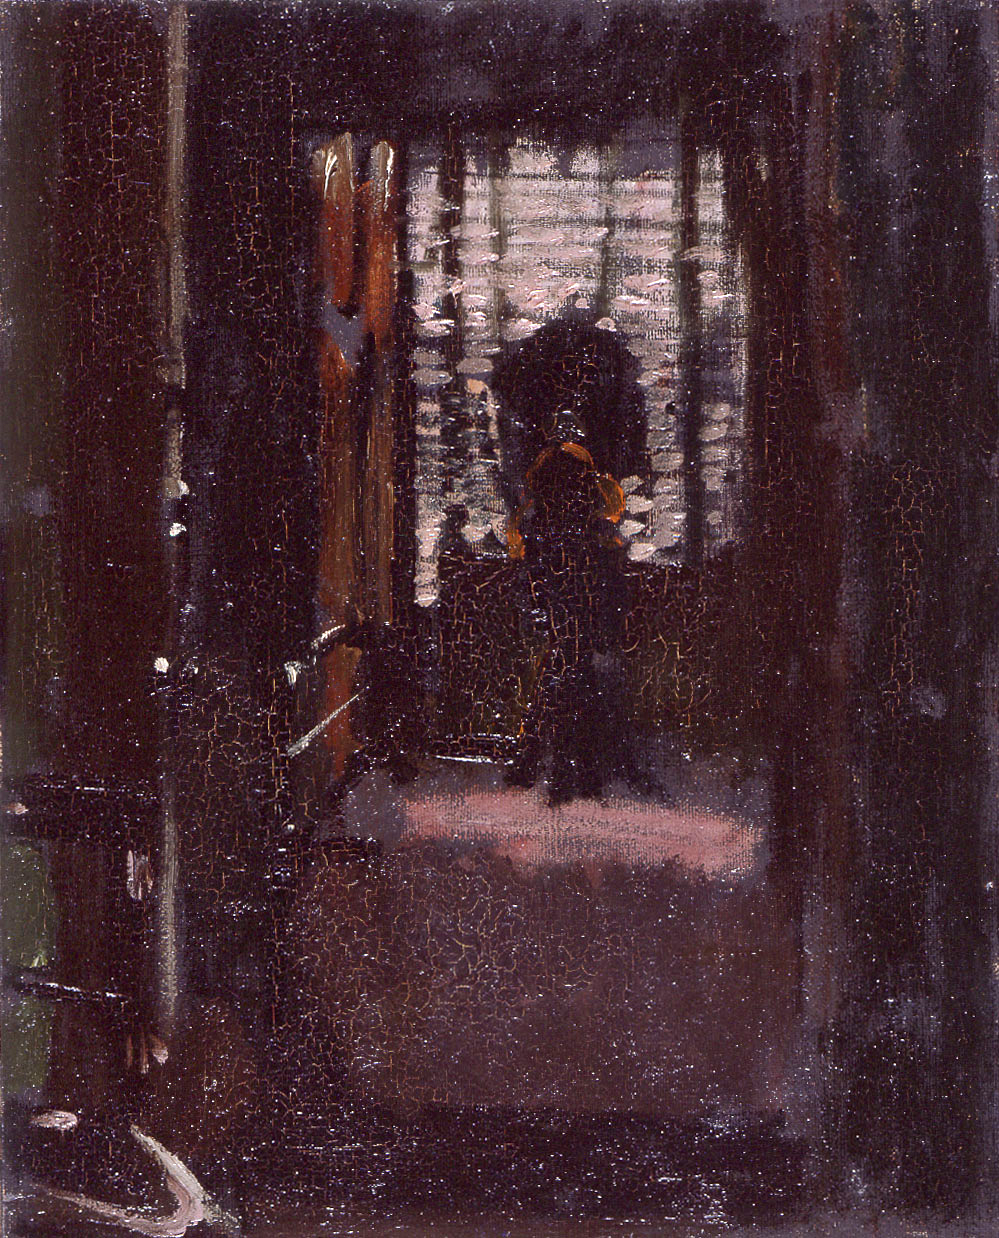 'Jack the Ripper's Bedroom' by Walter Sickert, 1907